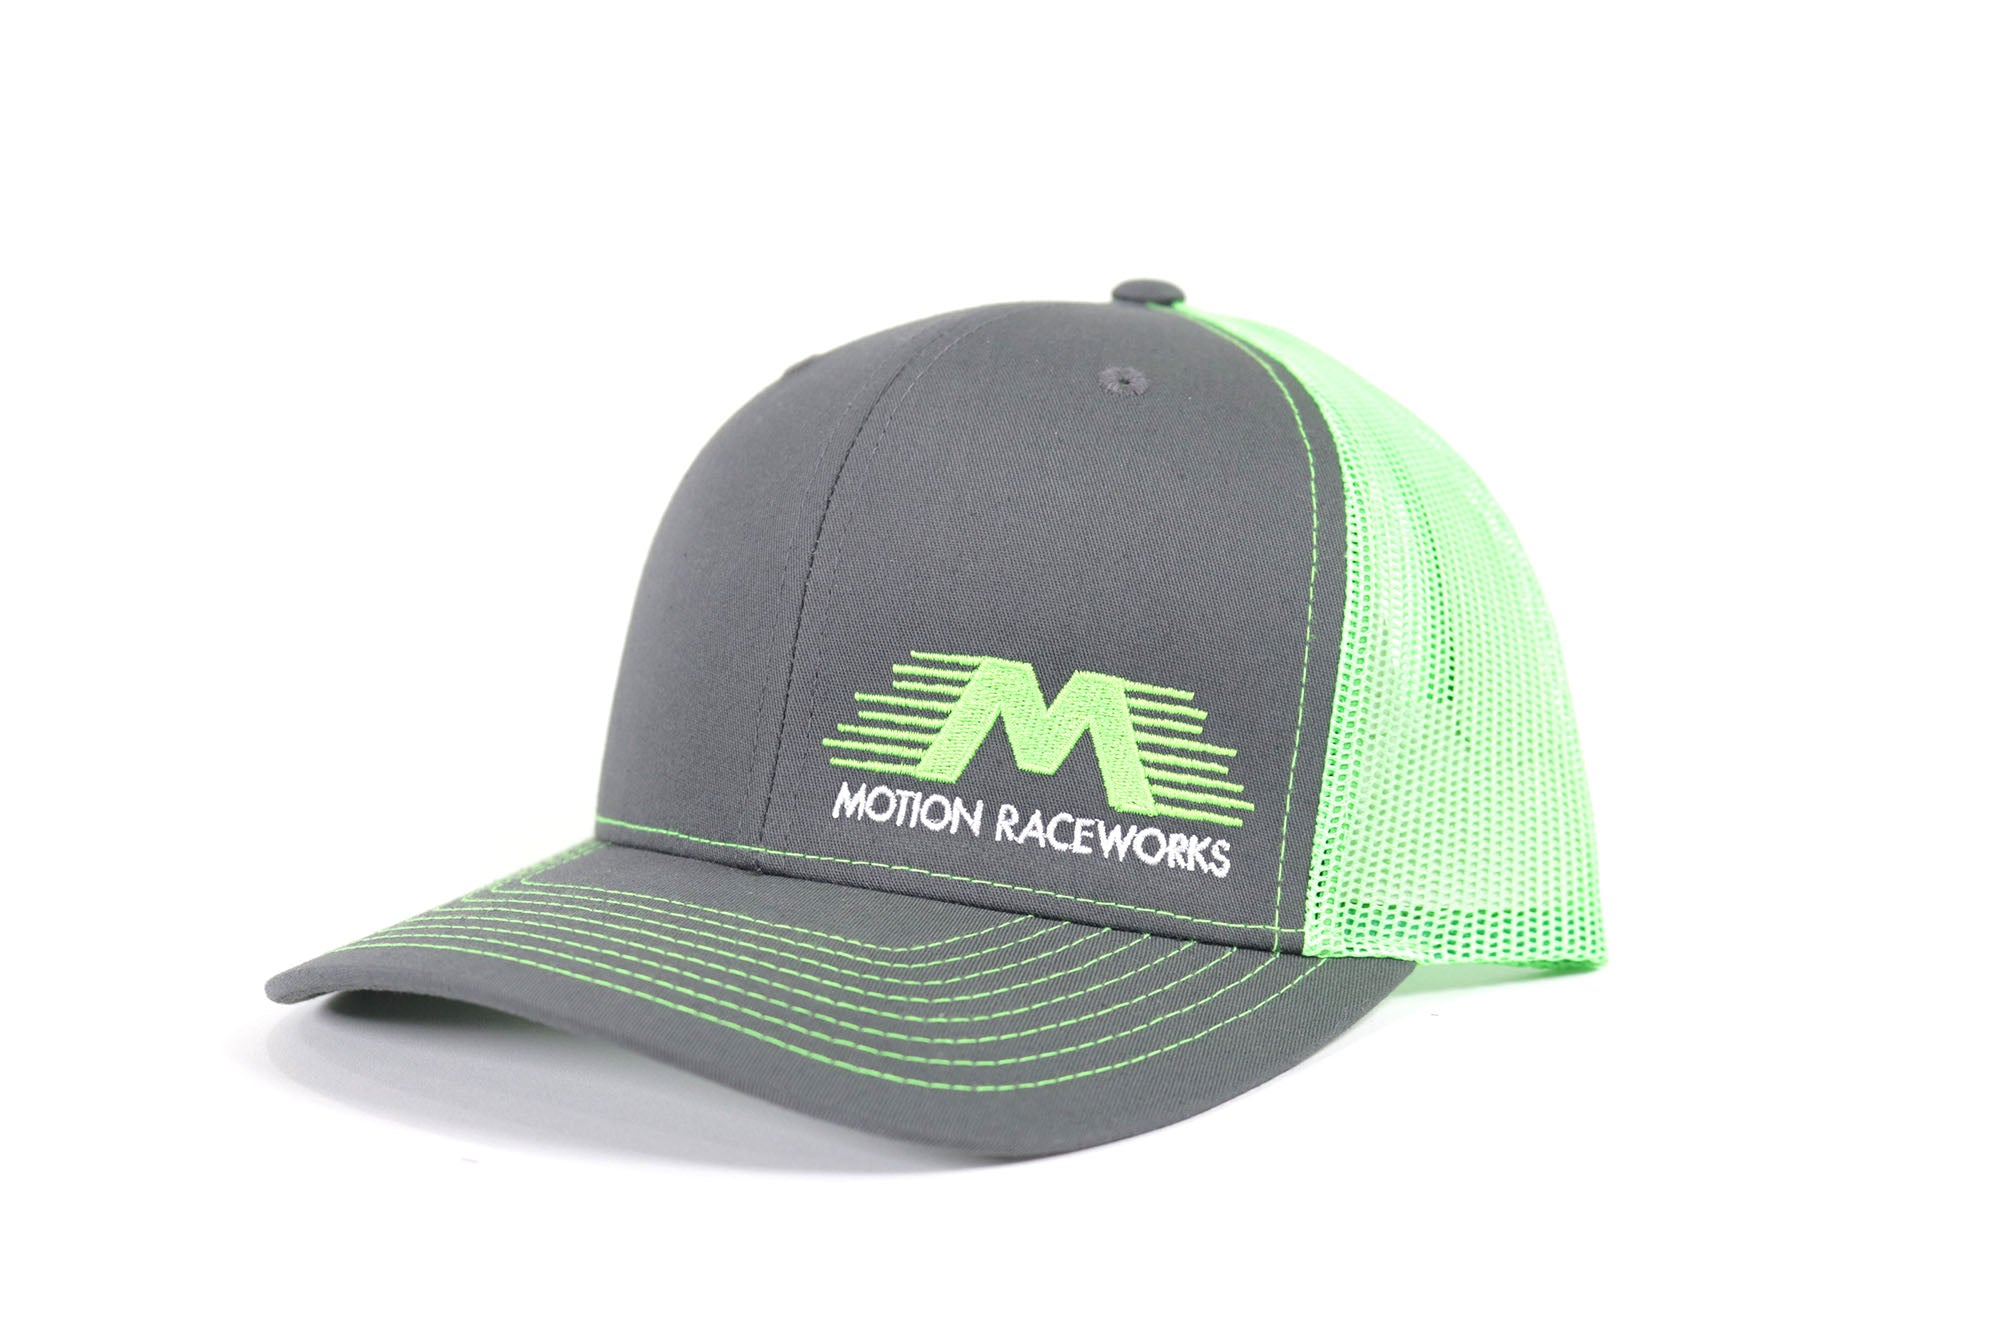 Neon Green/Grey Motion Raceworks Trucker Snapback Hat (Mesh Back)-Motion Raceworks-Motion Raceworks